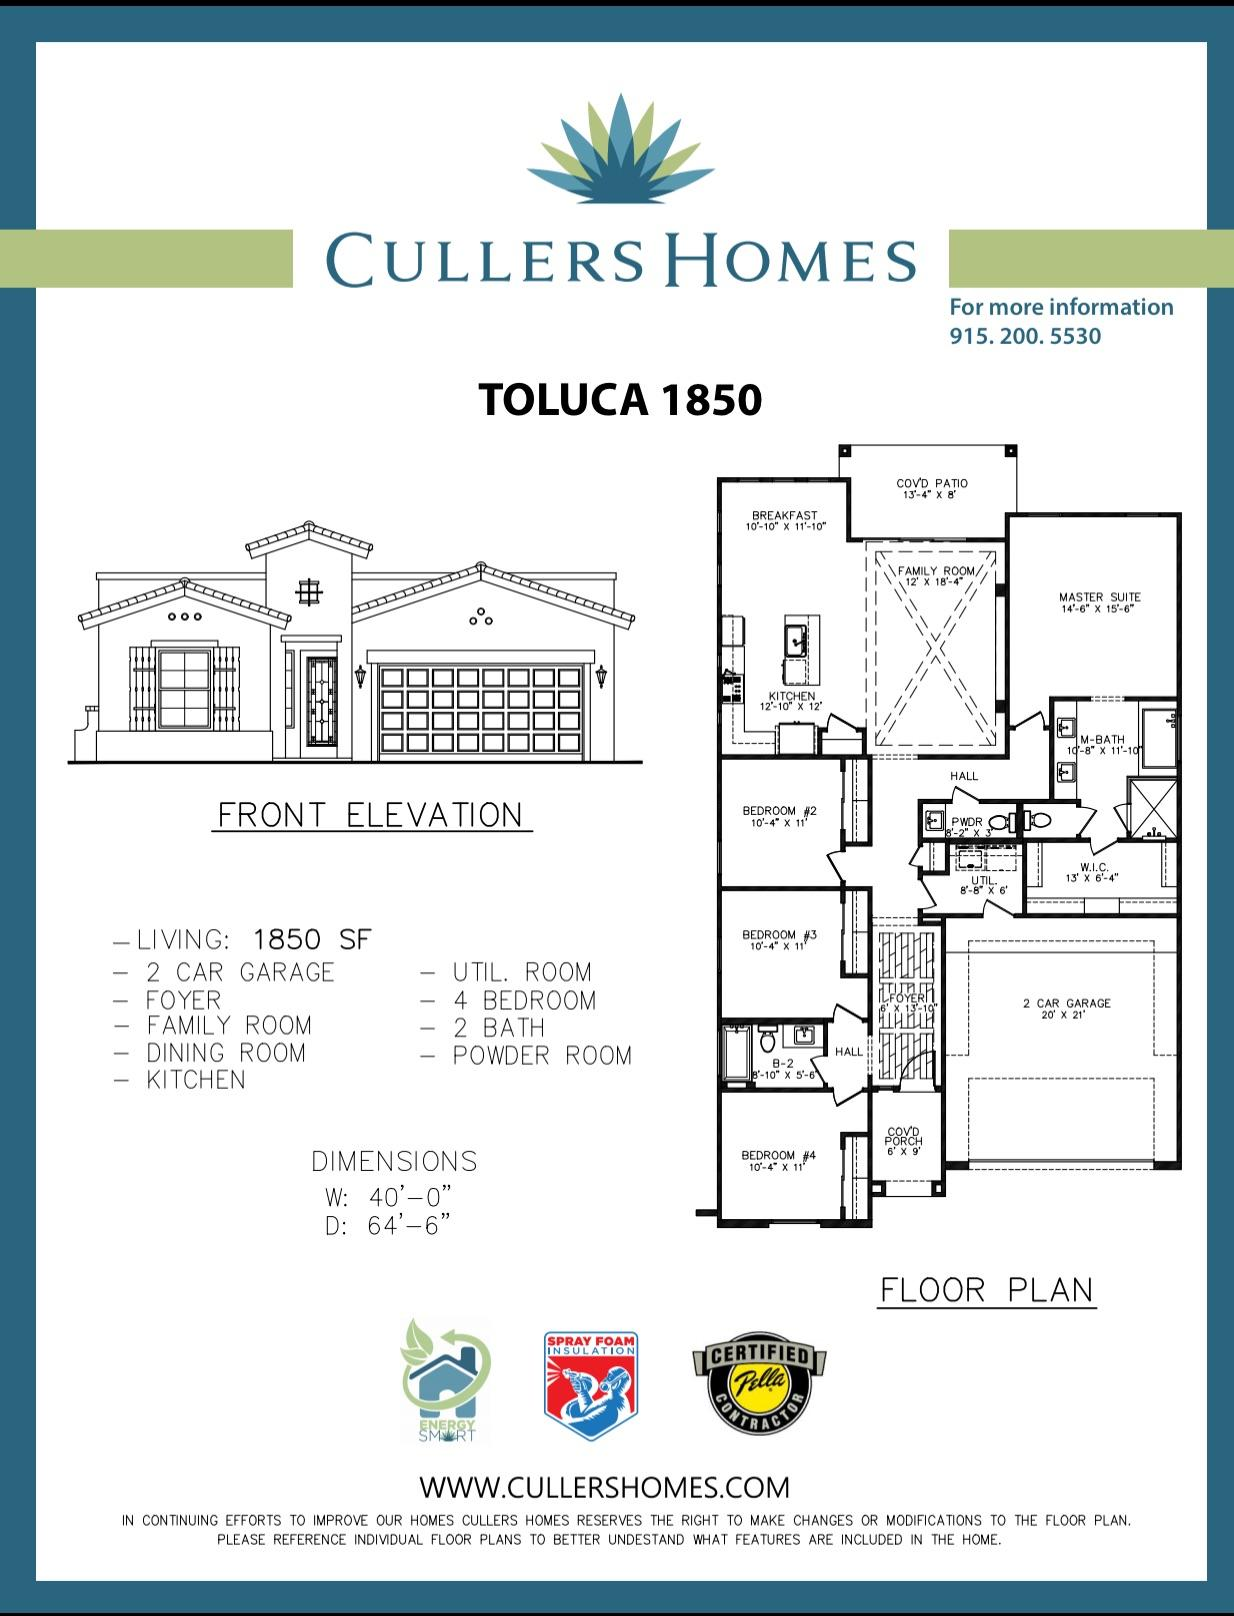 Beautiful Cullers home with the Floor plan Toluca 1850 Features  4 Bedrooms, 2.5  Bath, Utility Room, Foyer, Spacious Master Suite.    Cullers Homes energy advantage package is designed to reduce energy consumption by 40% exceeding energy star ratings! Call the listing agent for more details!